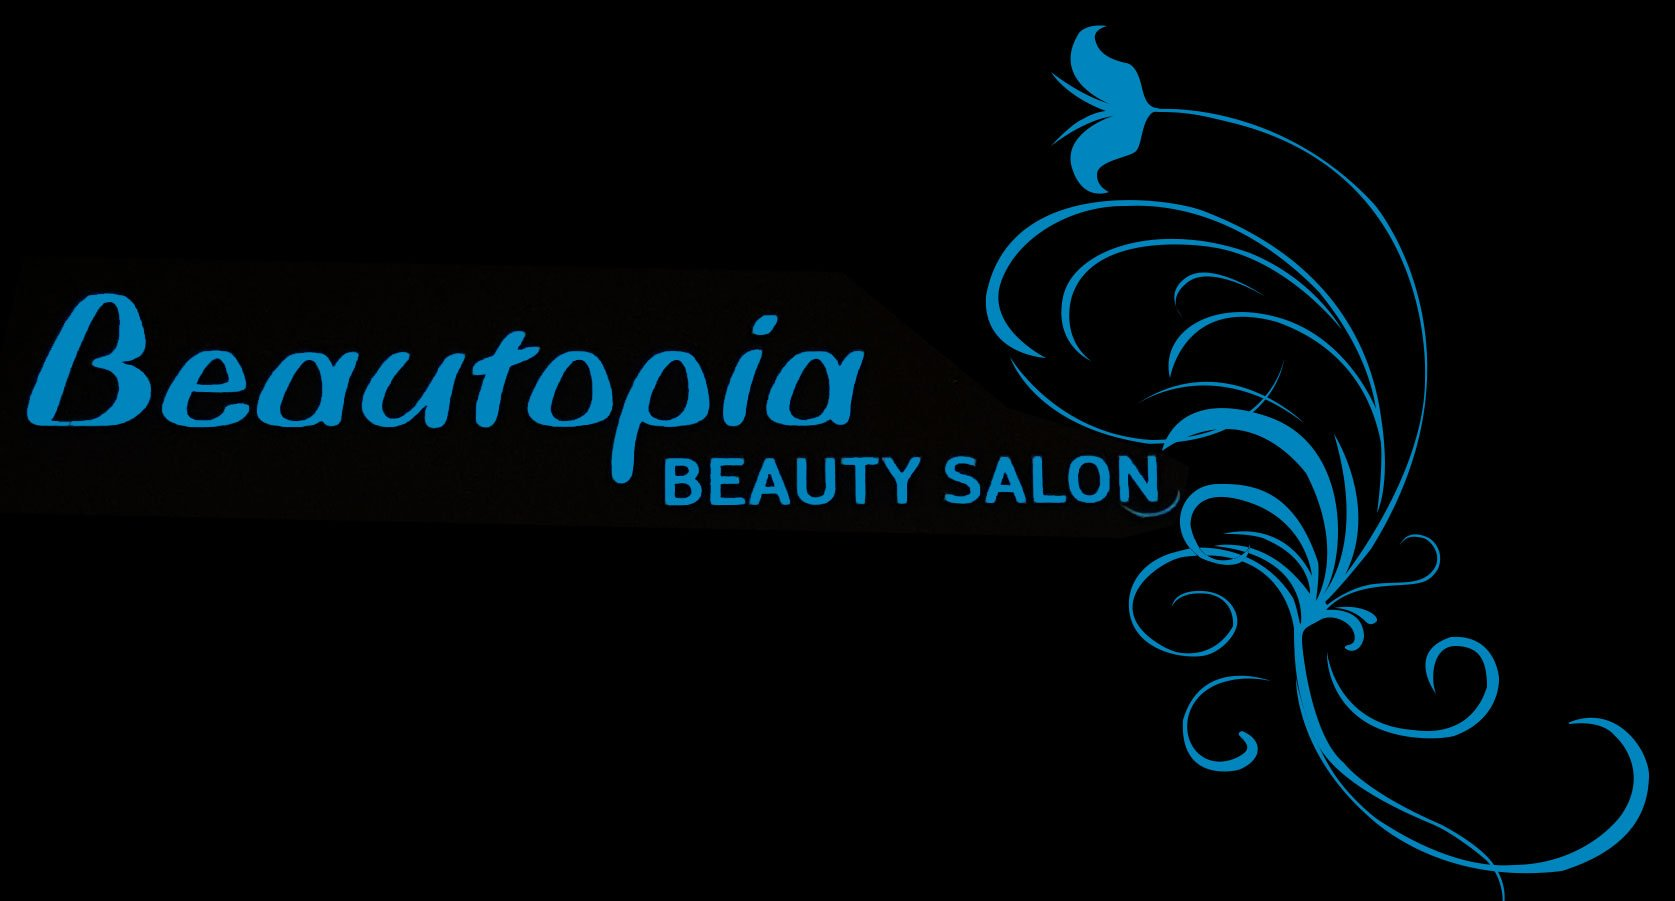 Beautopia beauty salon